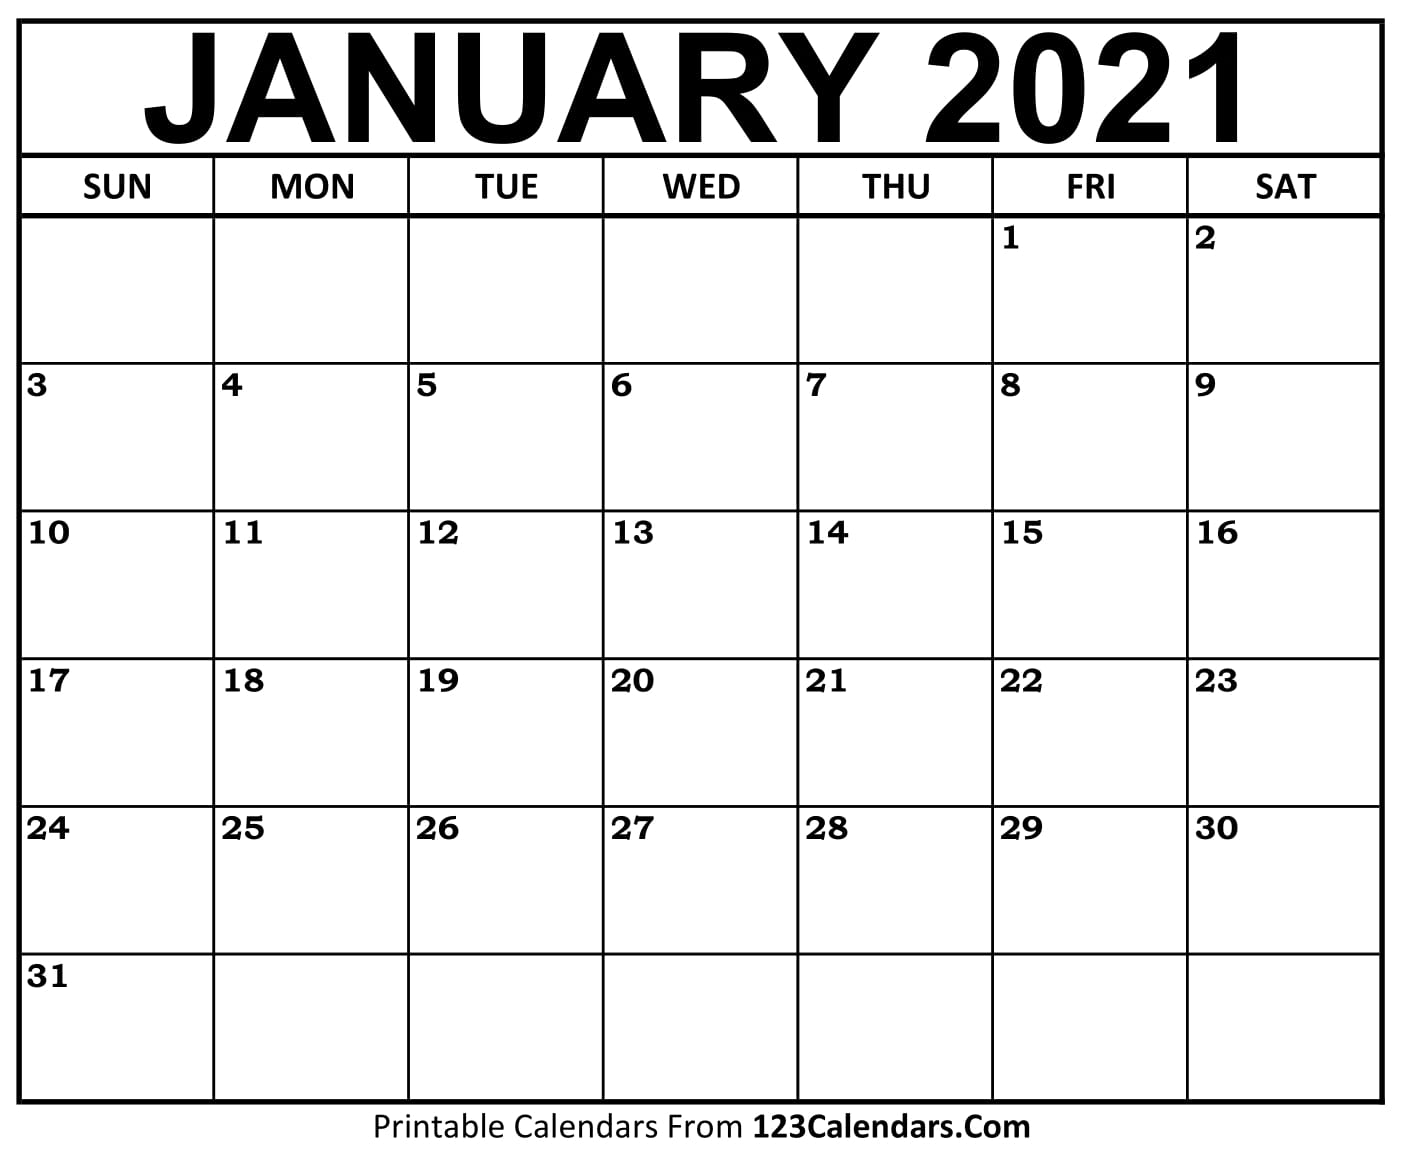 January 2021 Printable Calendar Printable January 2021 Calendar Templates | 123Calendars.com